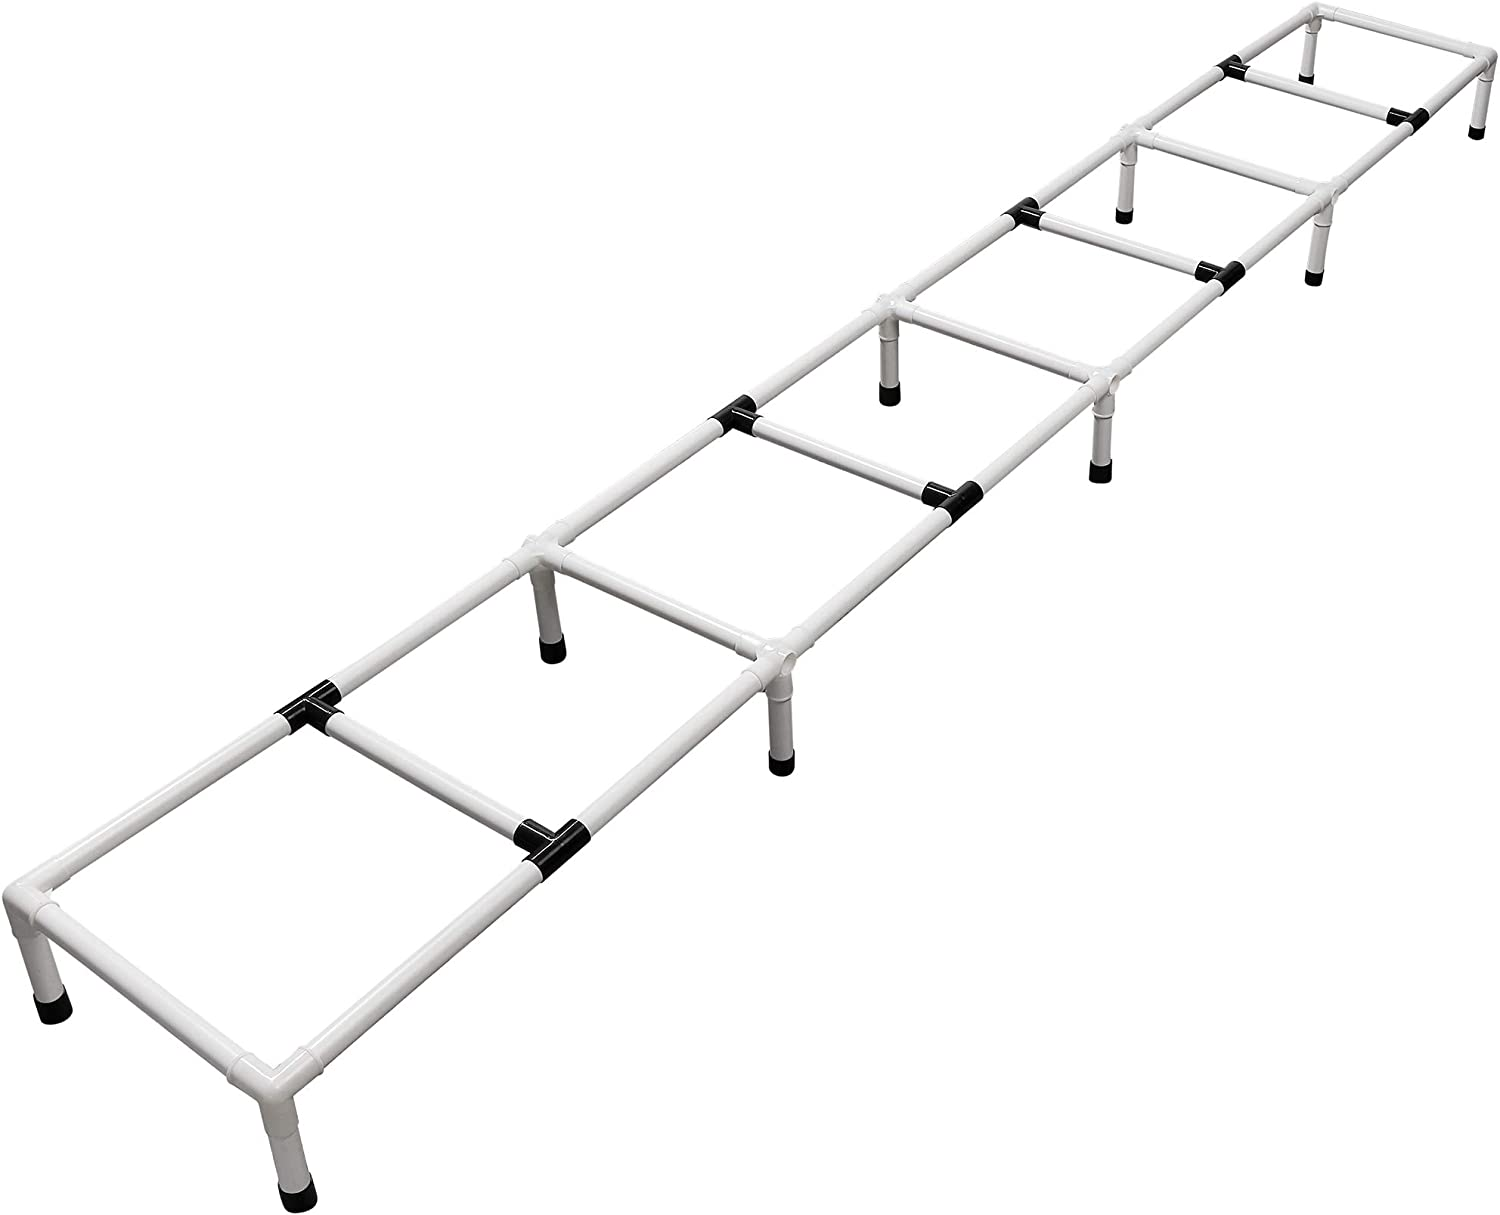 Better Sporting Dogs Agility Training Ladder   Dog Agility Training Equipment   Dog Training Equipment